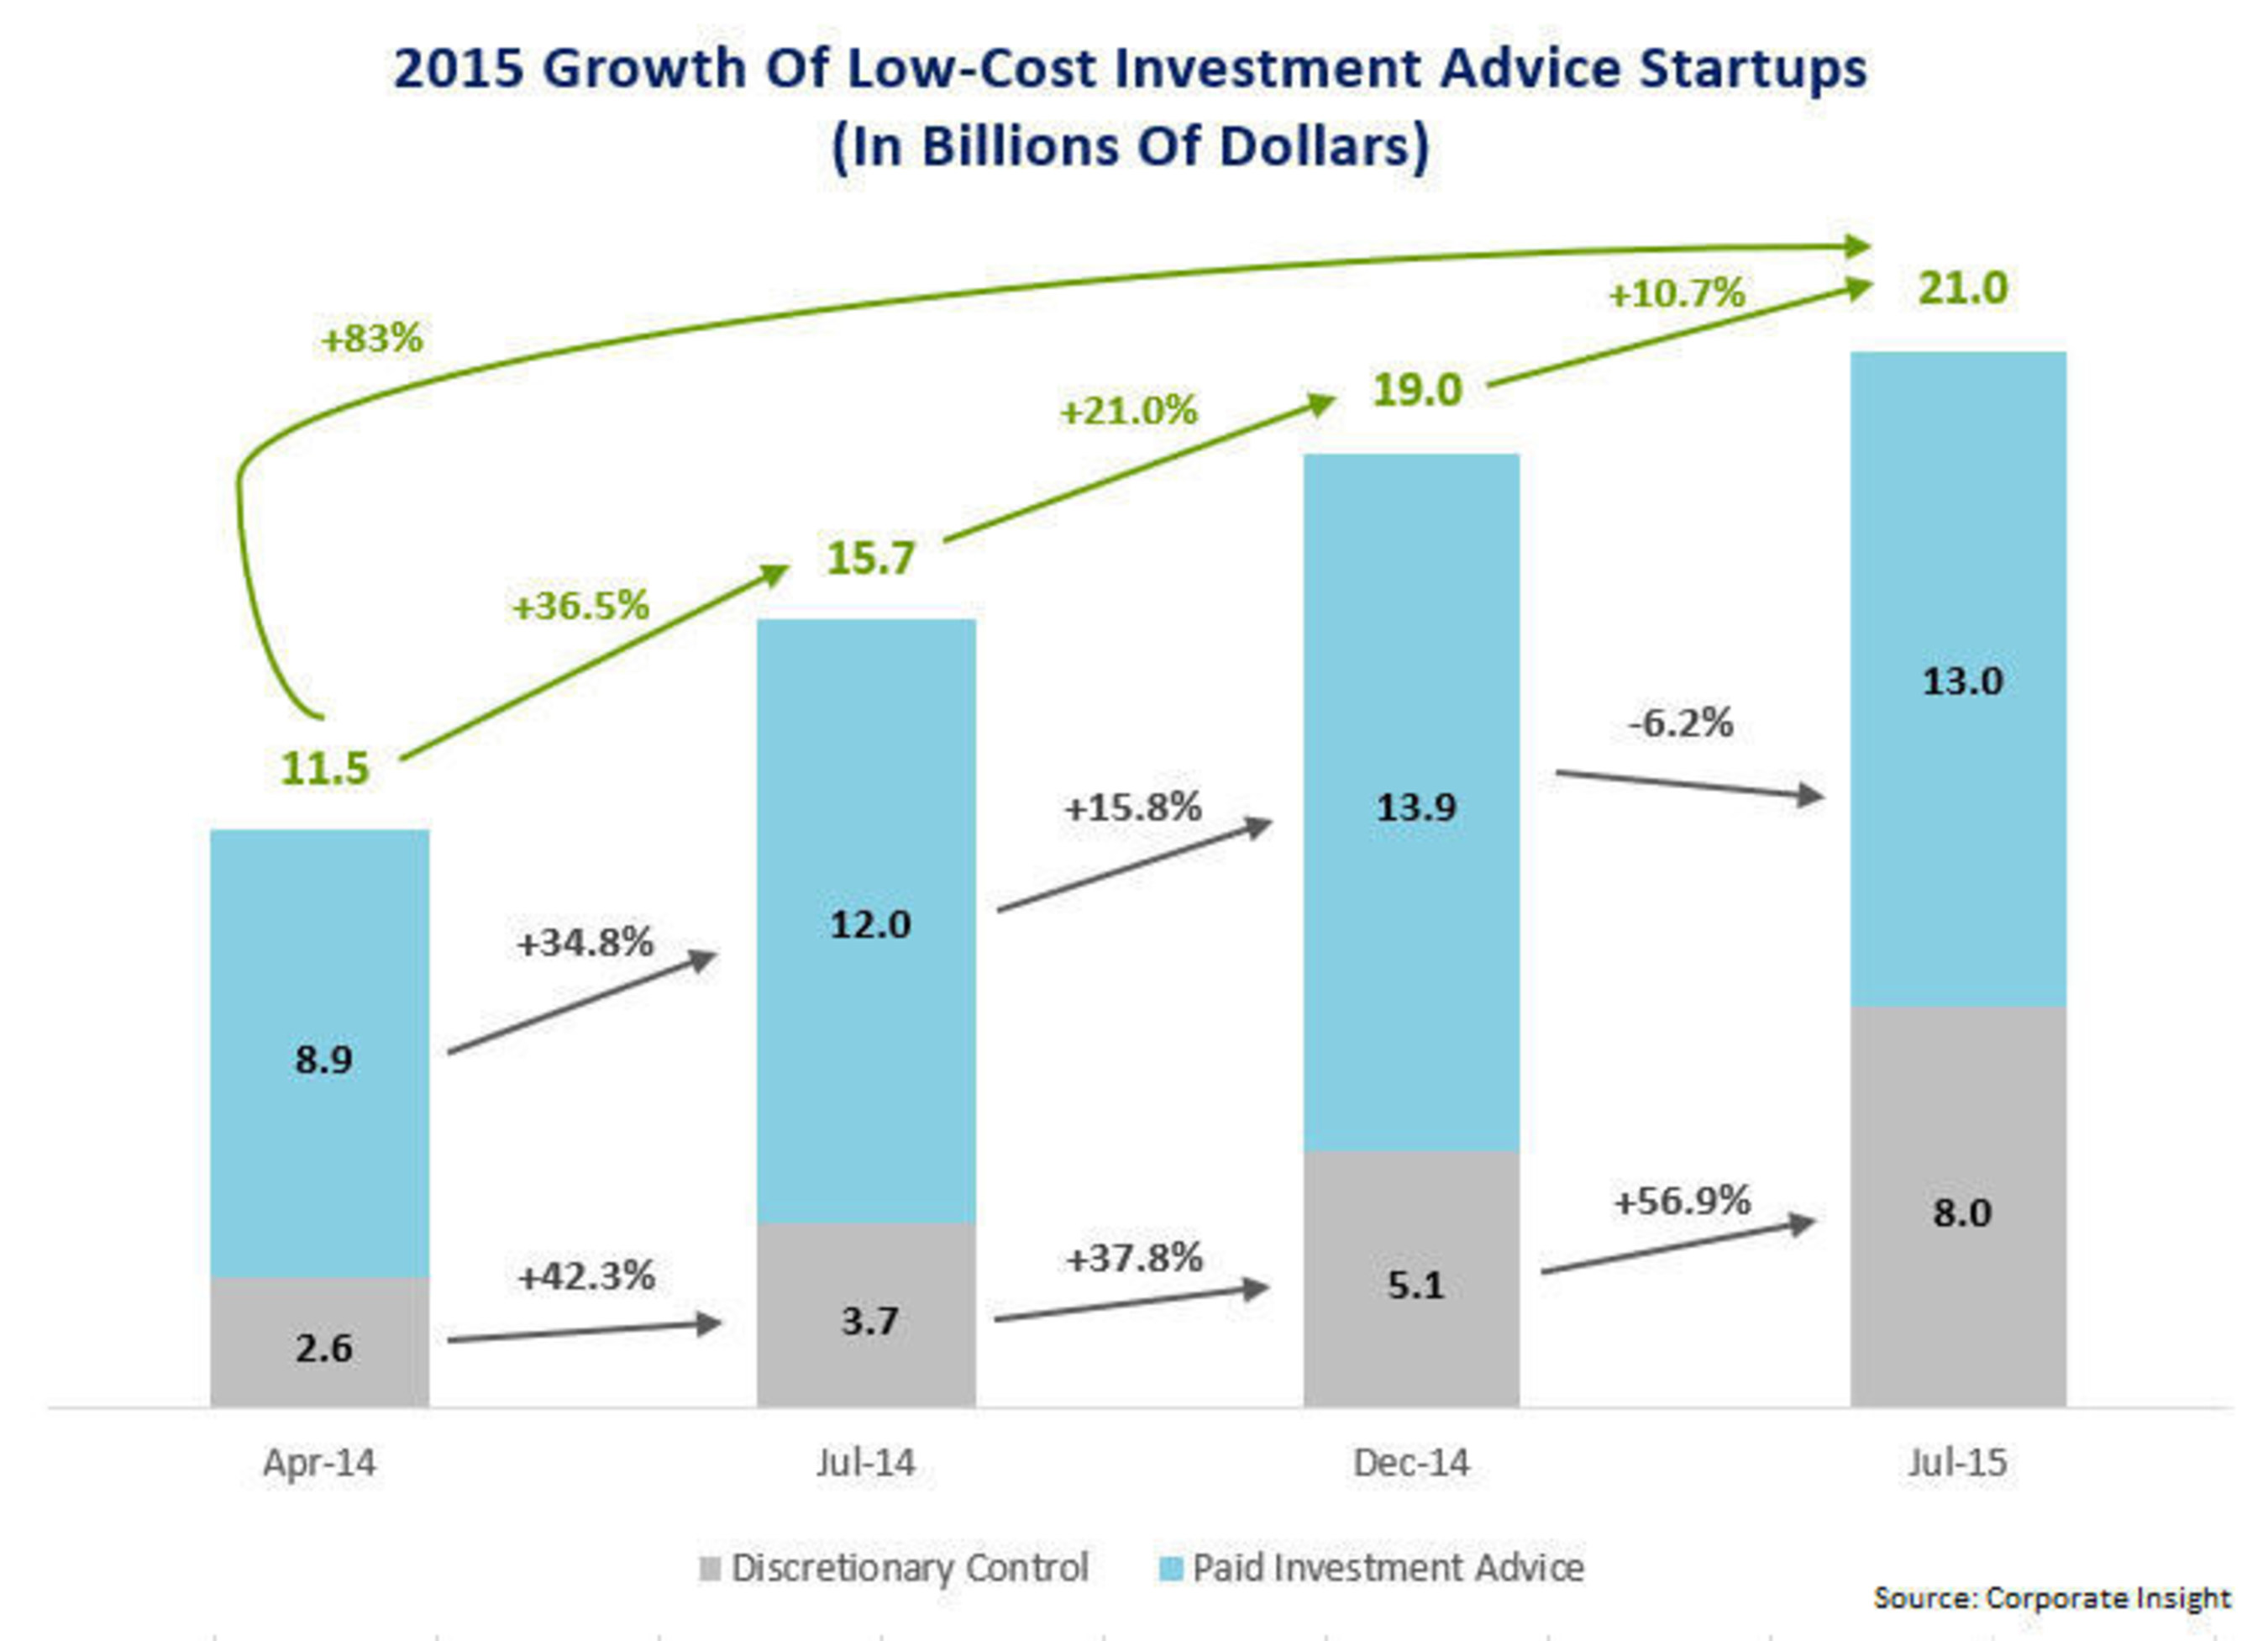 From April 2014 to July 2015, total assets from 11 leading digital advice providers increased from $11.5 billion to $21 billion, an 83 percent growth rate in a span of just 15 months. Most of this growth can be attributed to the managed account model, as the appeal of the algo-based advice approach seems to have plateaued.